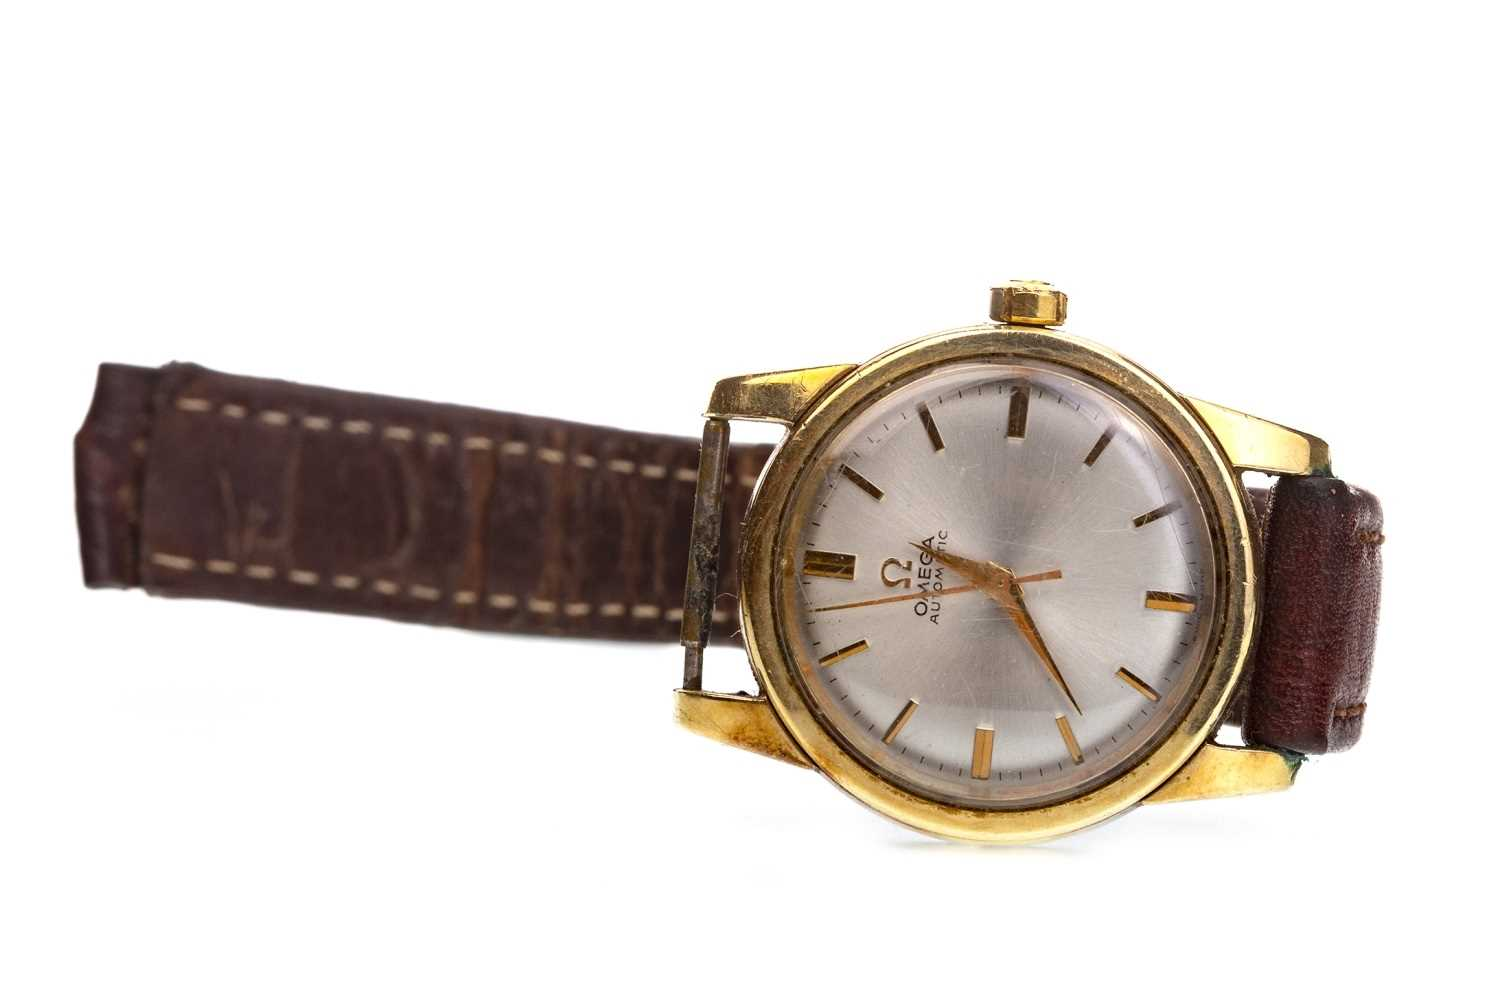 Lot 756-A GENTLEMAN'S OMEGA AUTOMATIC WRIST WATCH